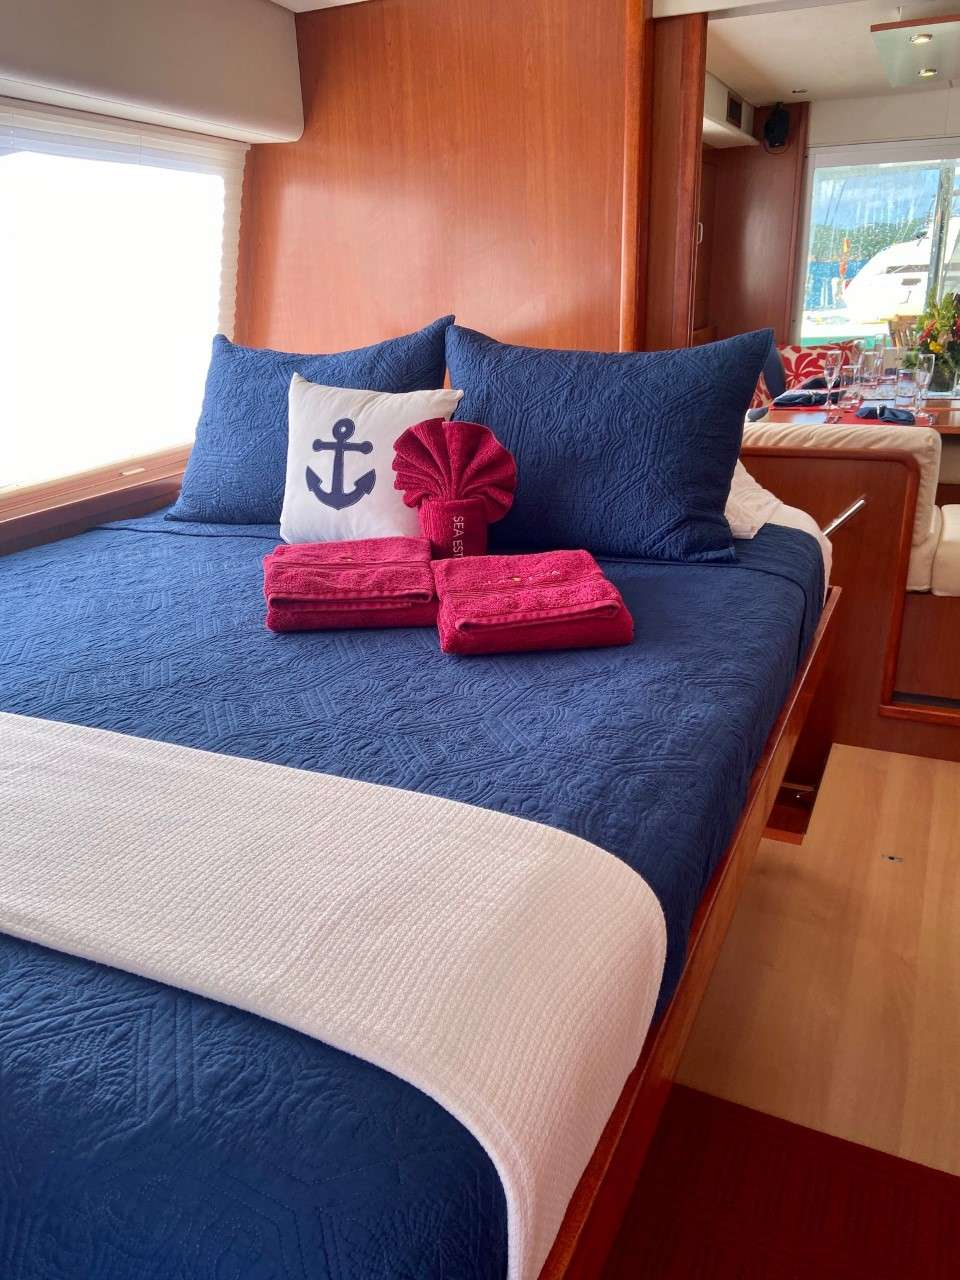 For the best sleep ever - memory foam mattress toppers in all cabins